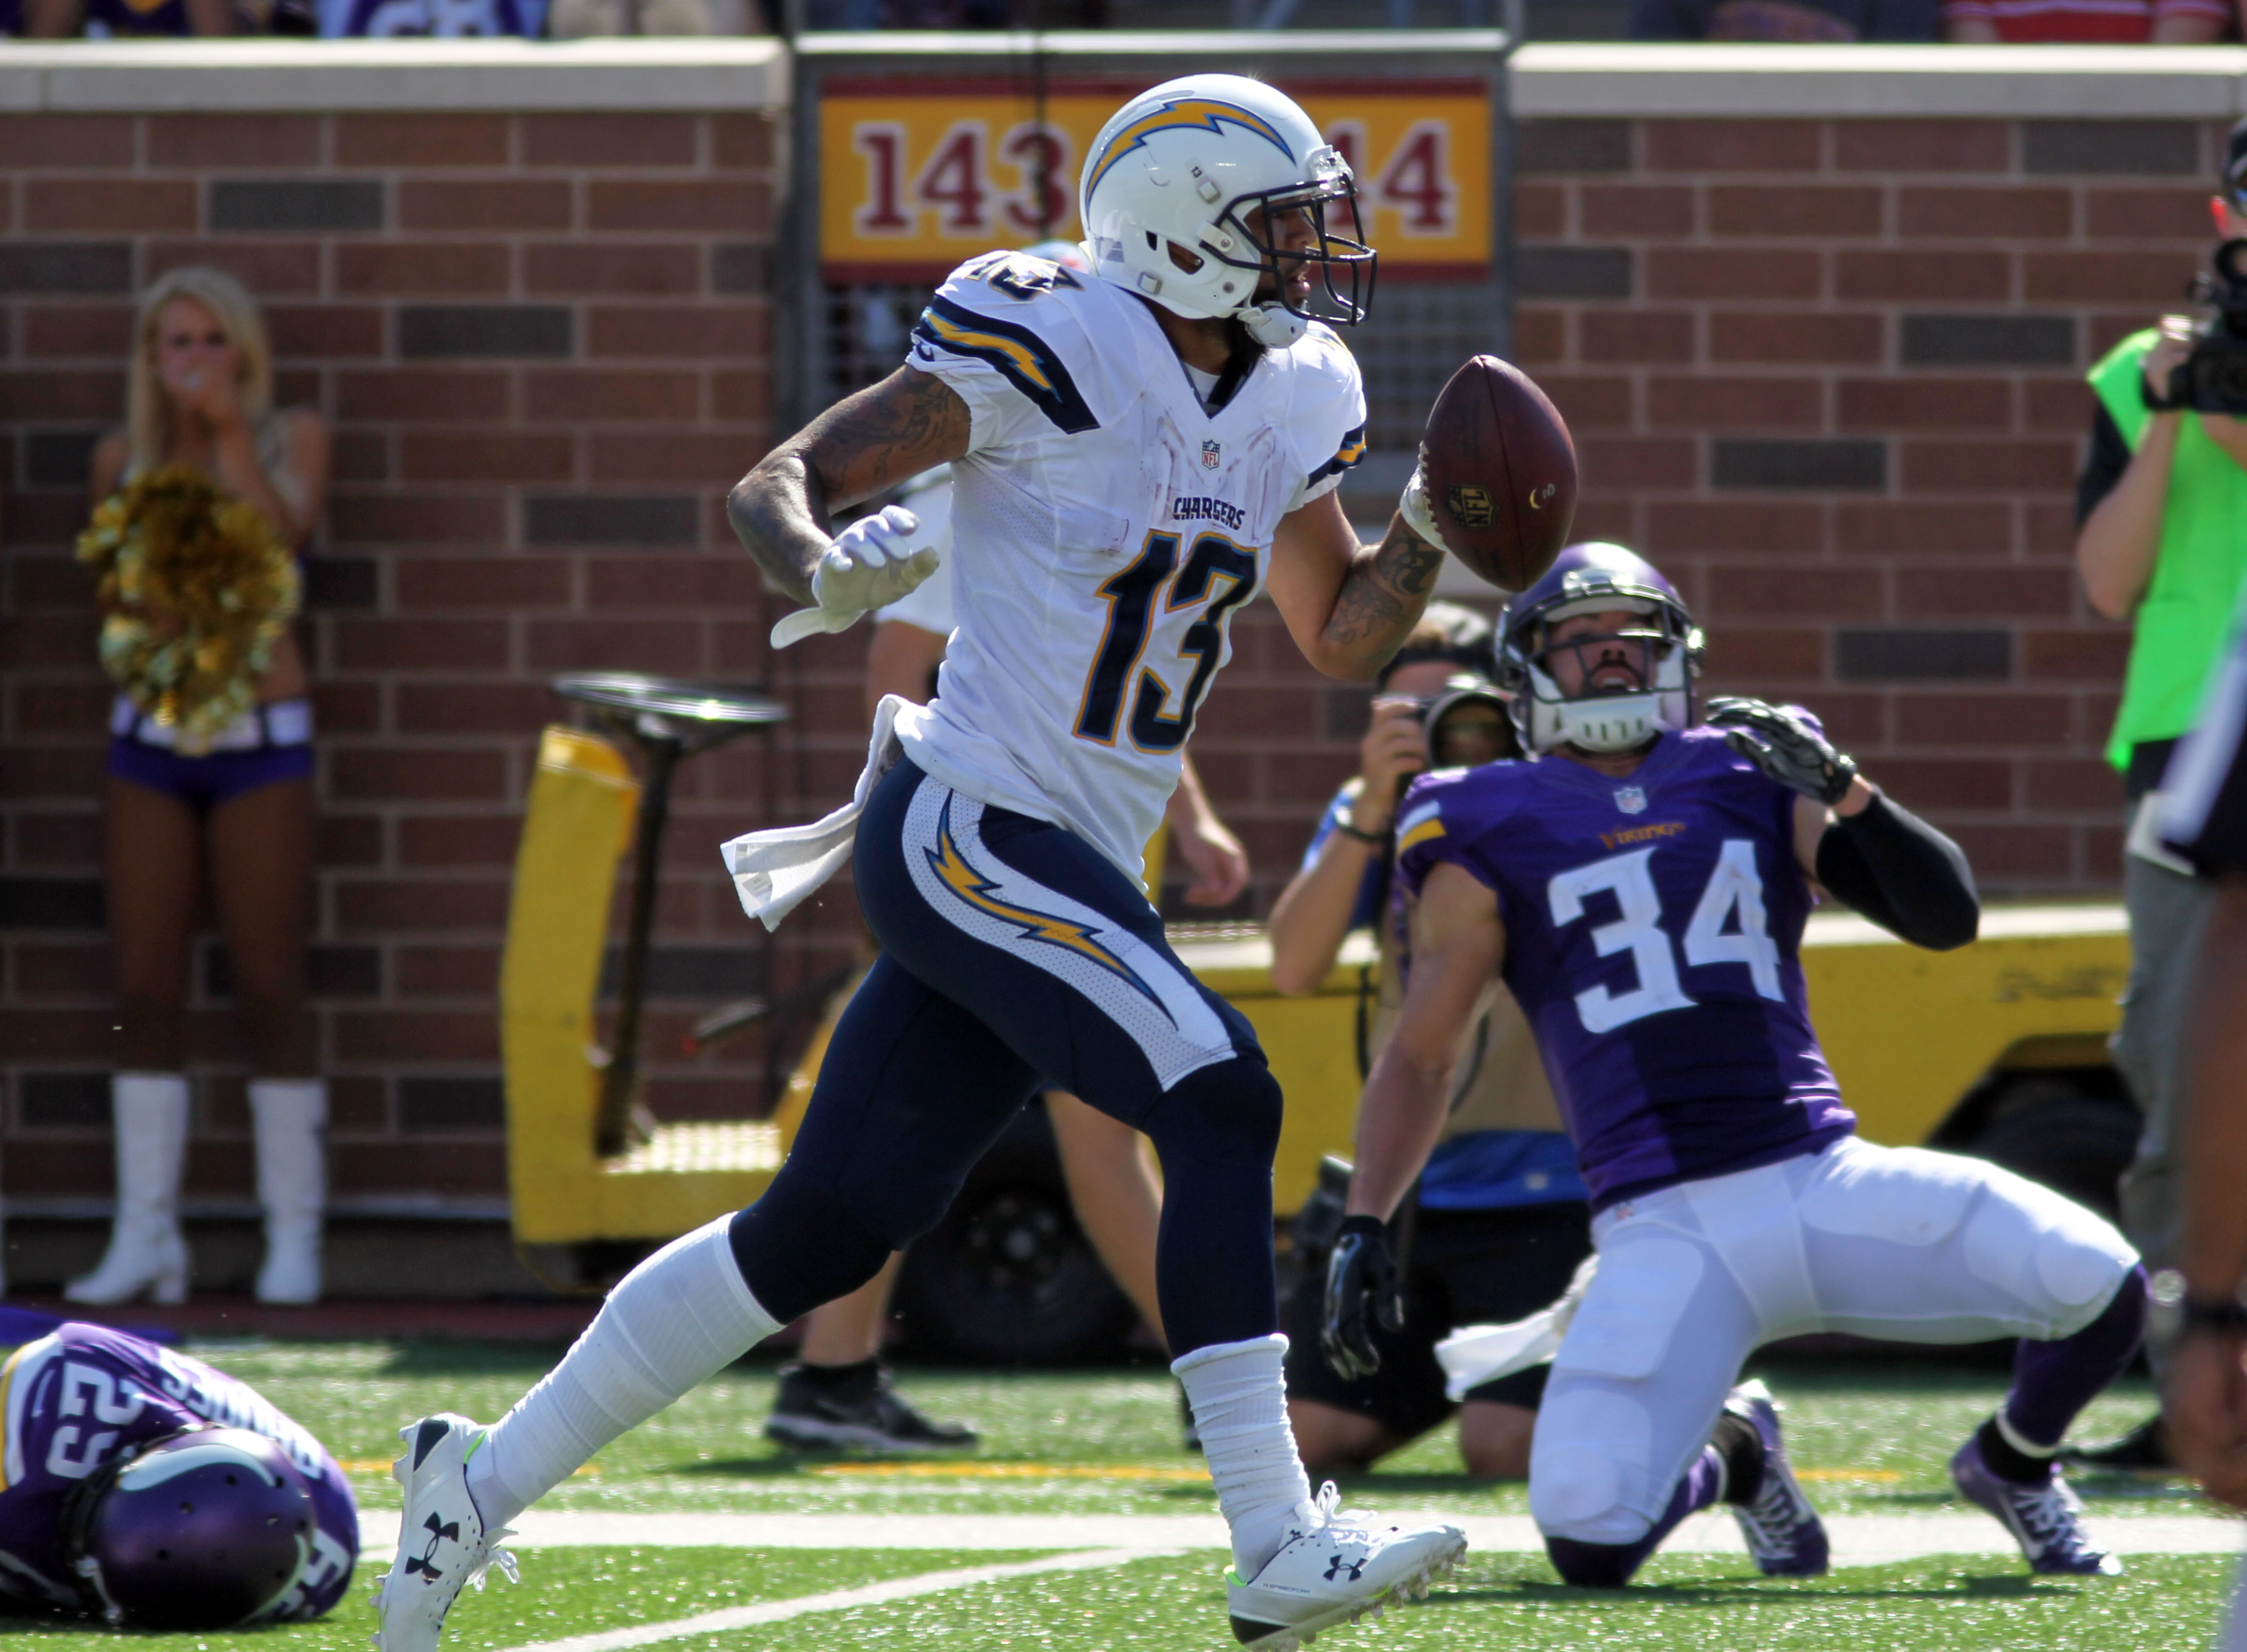 San Diego Chargers wide receiver Keenan Allen (13) scores a touchdown in front of Minnesota Vikings strong safety Andrew Sendejo (34) in the first half of an NFL football game in Minneapolis, Sunday, Sept. 27, 2015. (AP Photo/Andy Clayton-King)